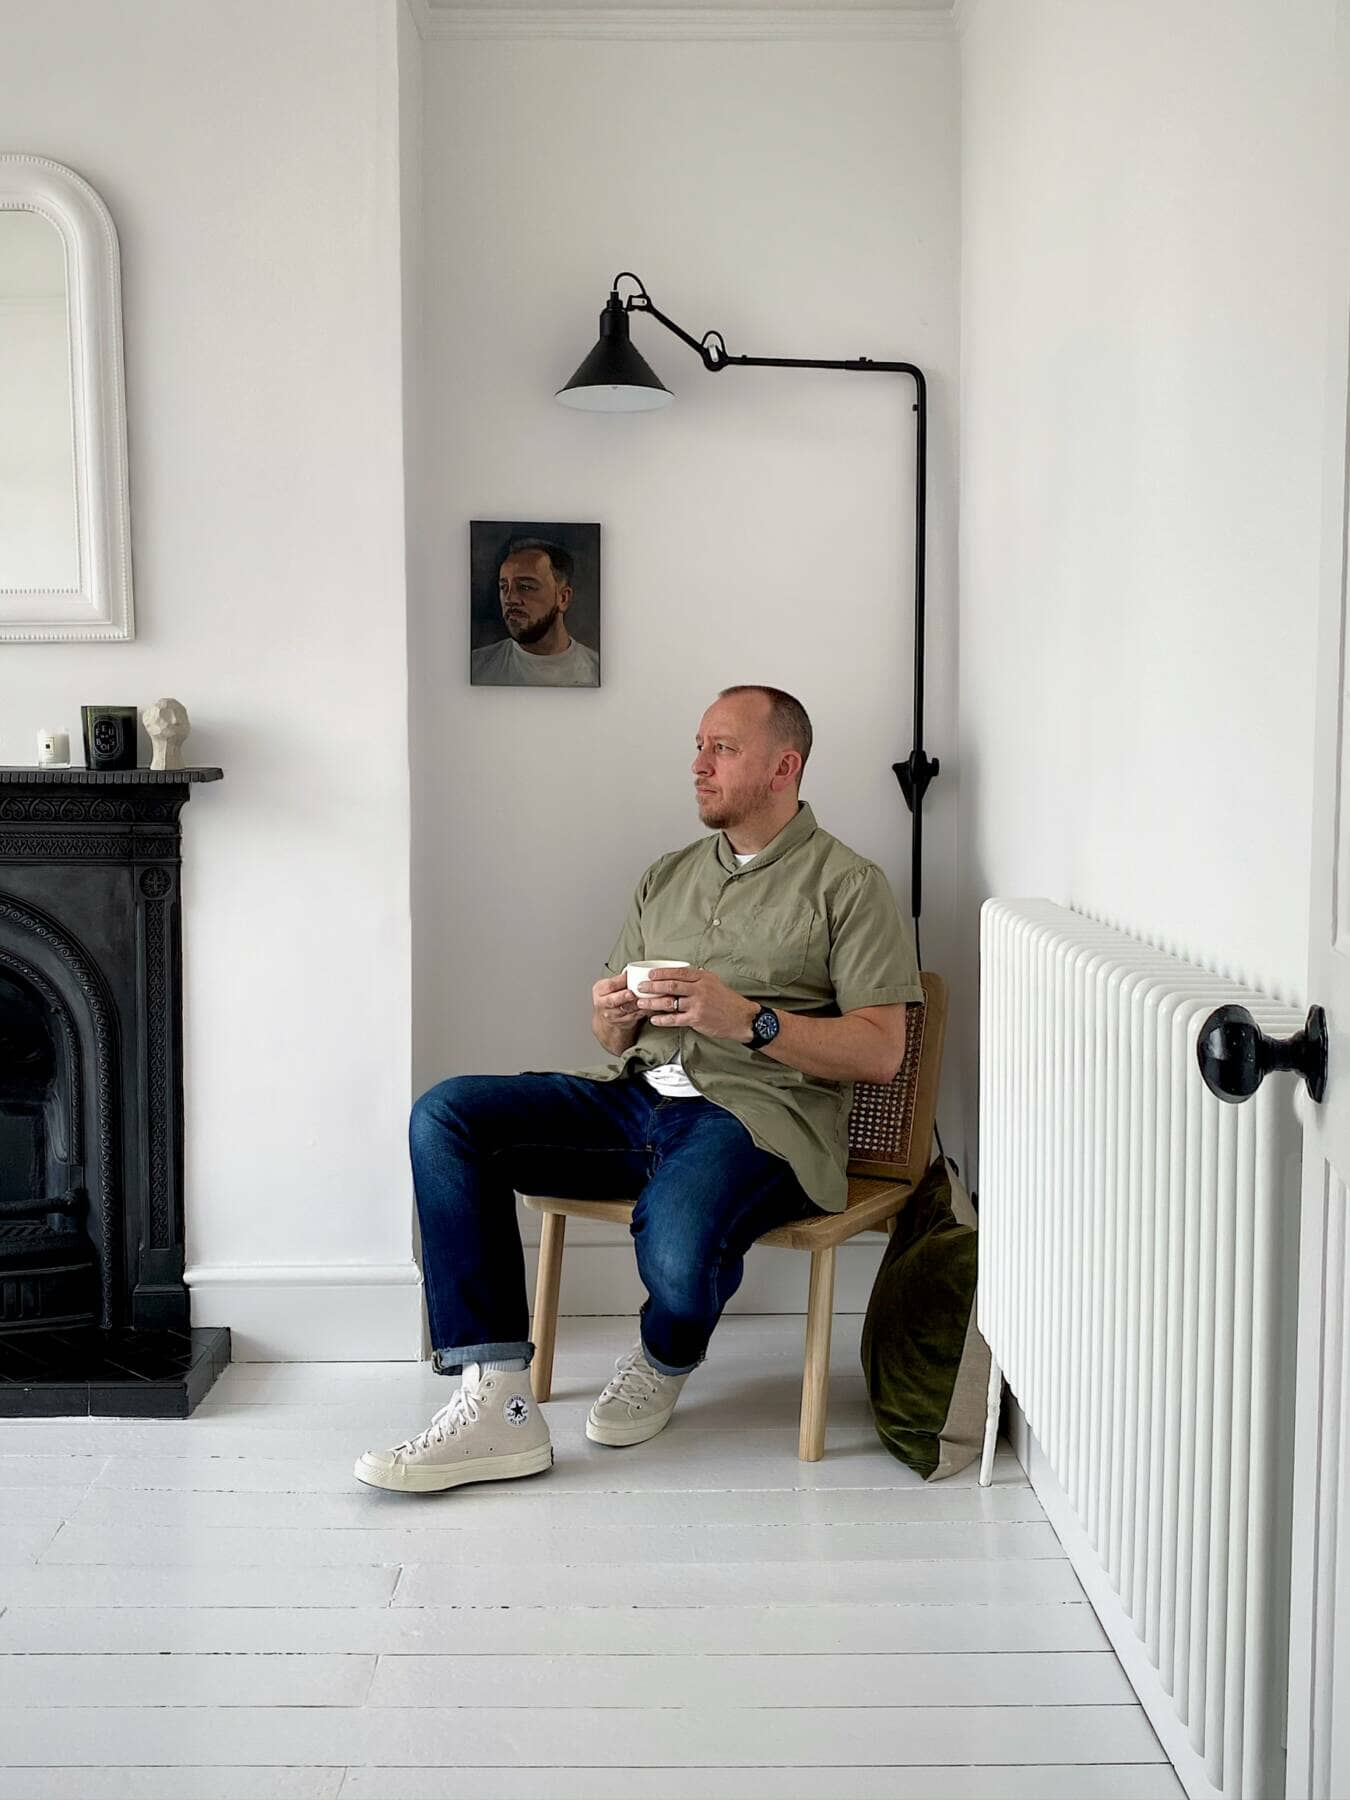 Donna's husband sat on a chair in the living room next to the radiator